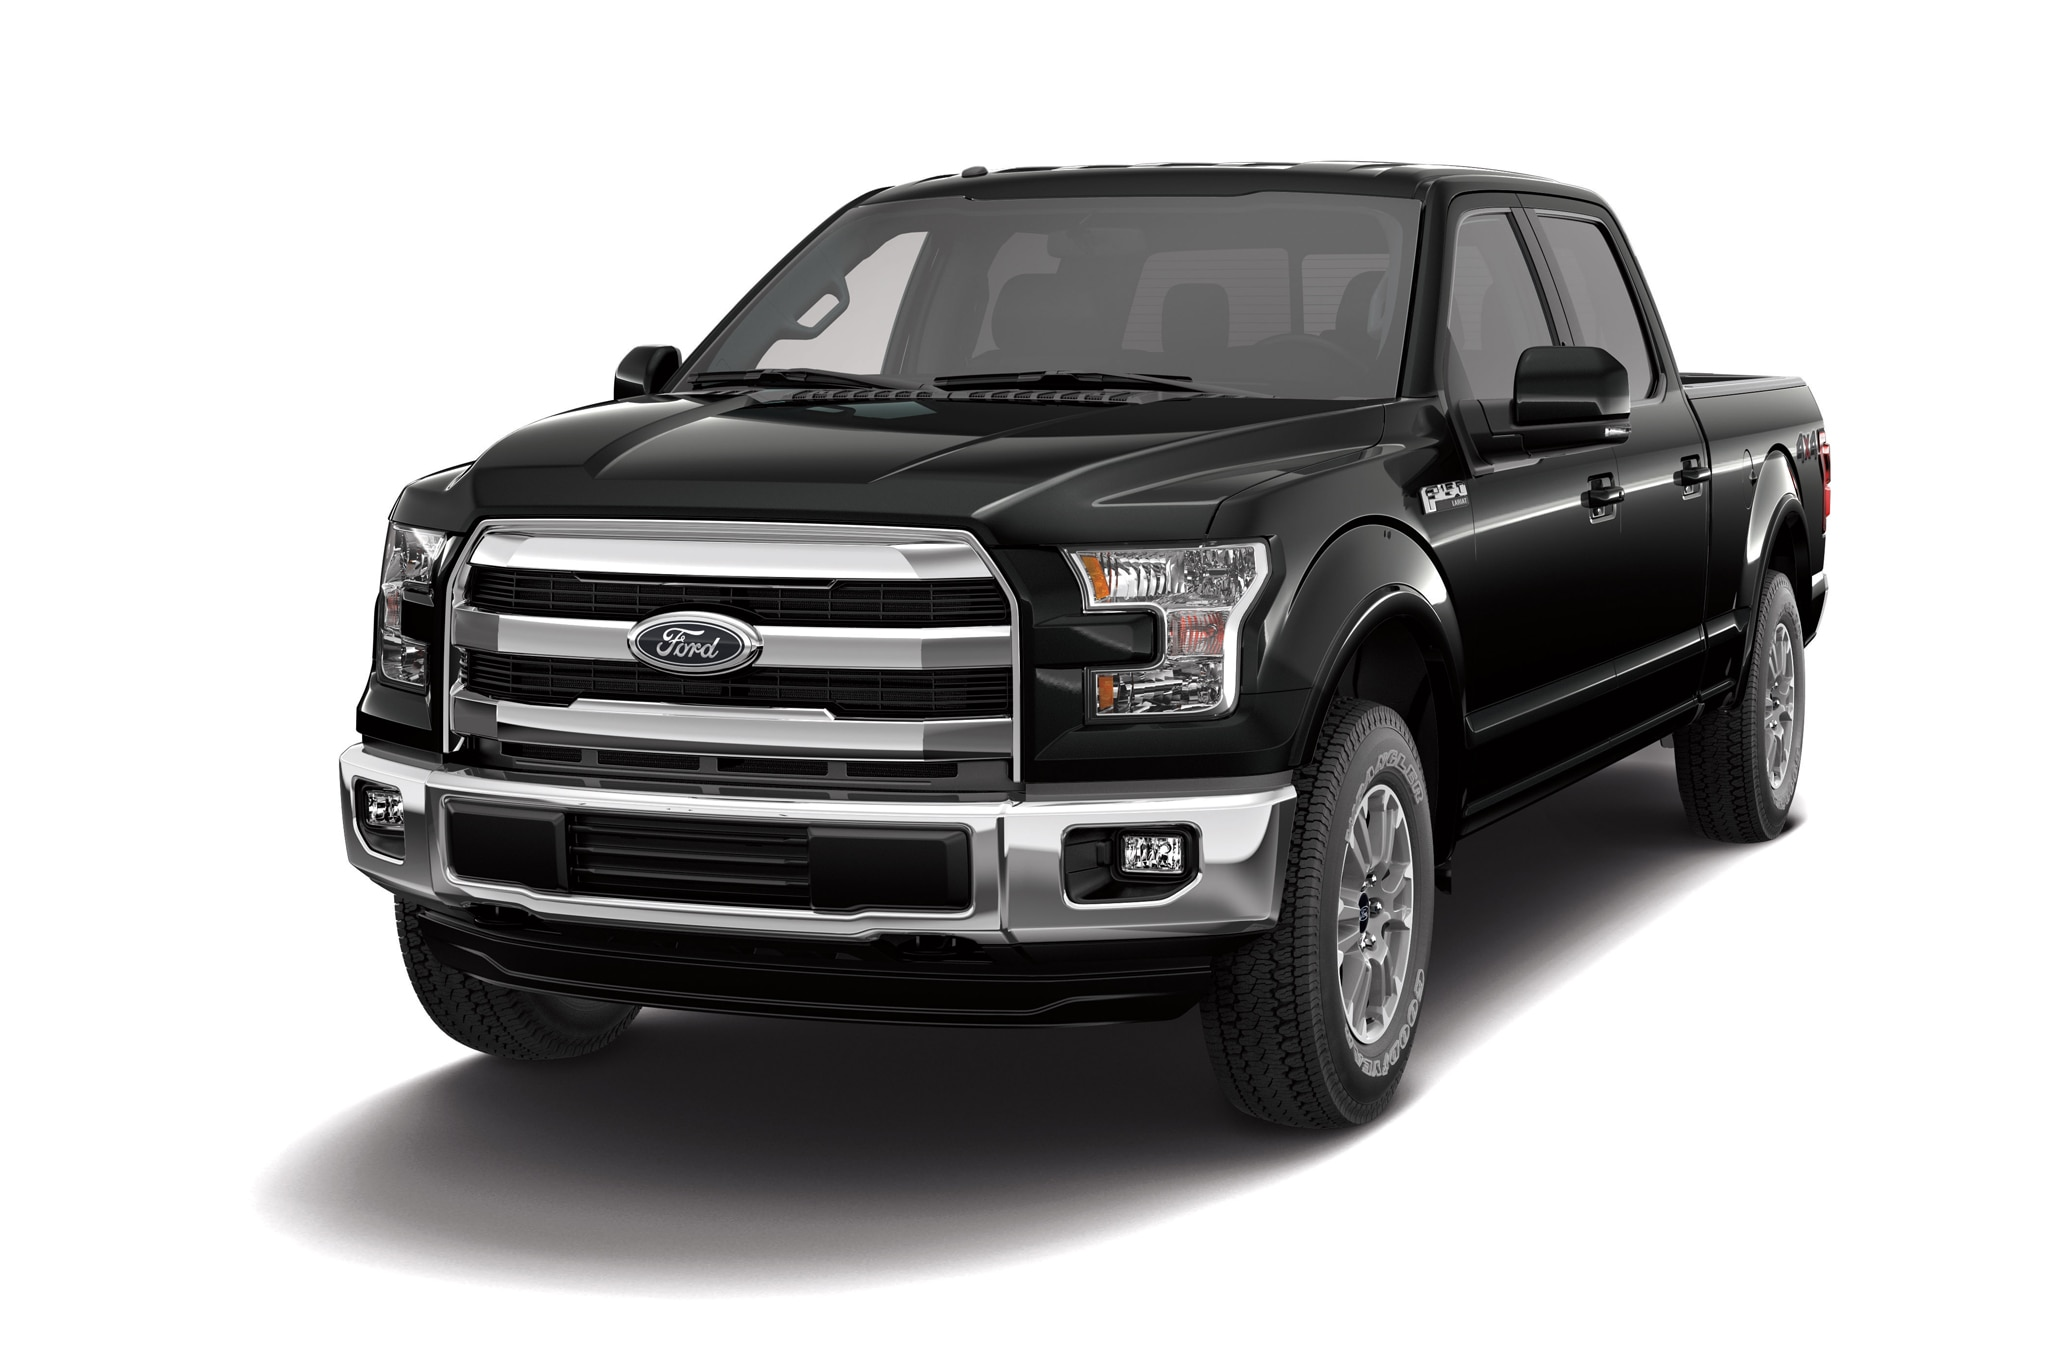 2015 ford f 150 expedition super duty king ranch debut automobile. Black Bedroom Furniture Sets. Home Design Ideas